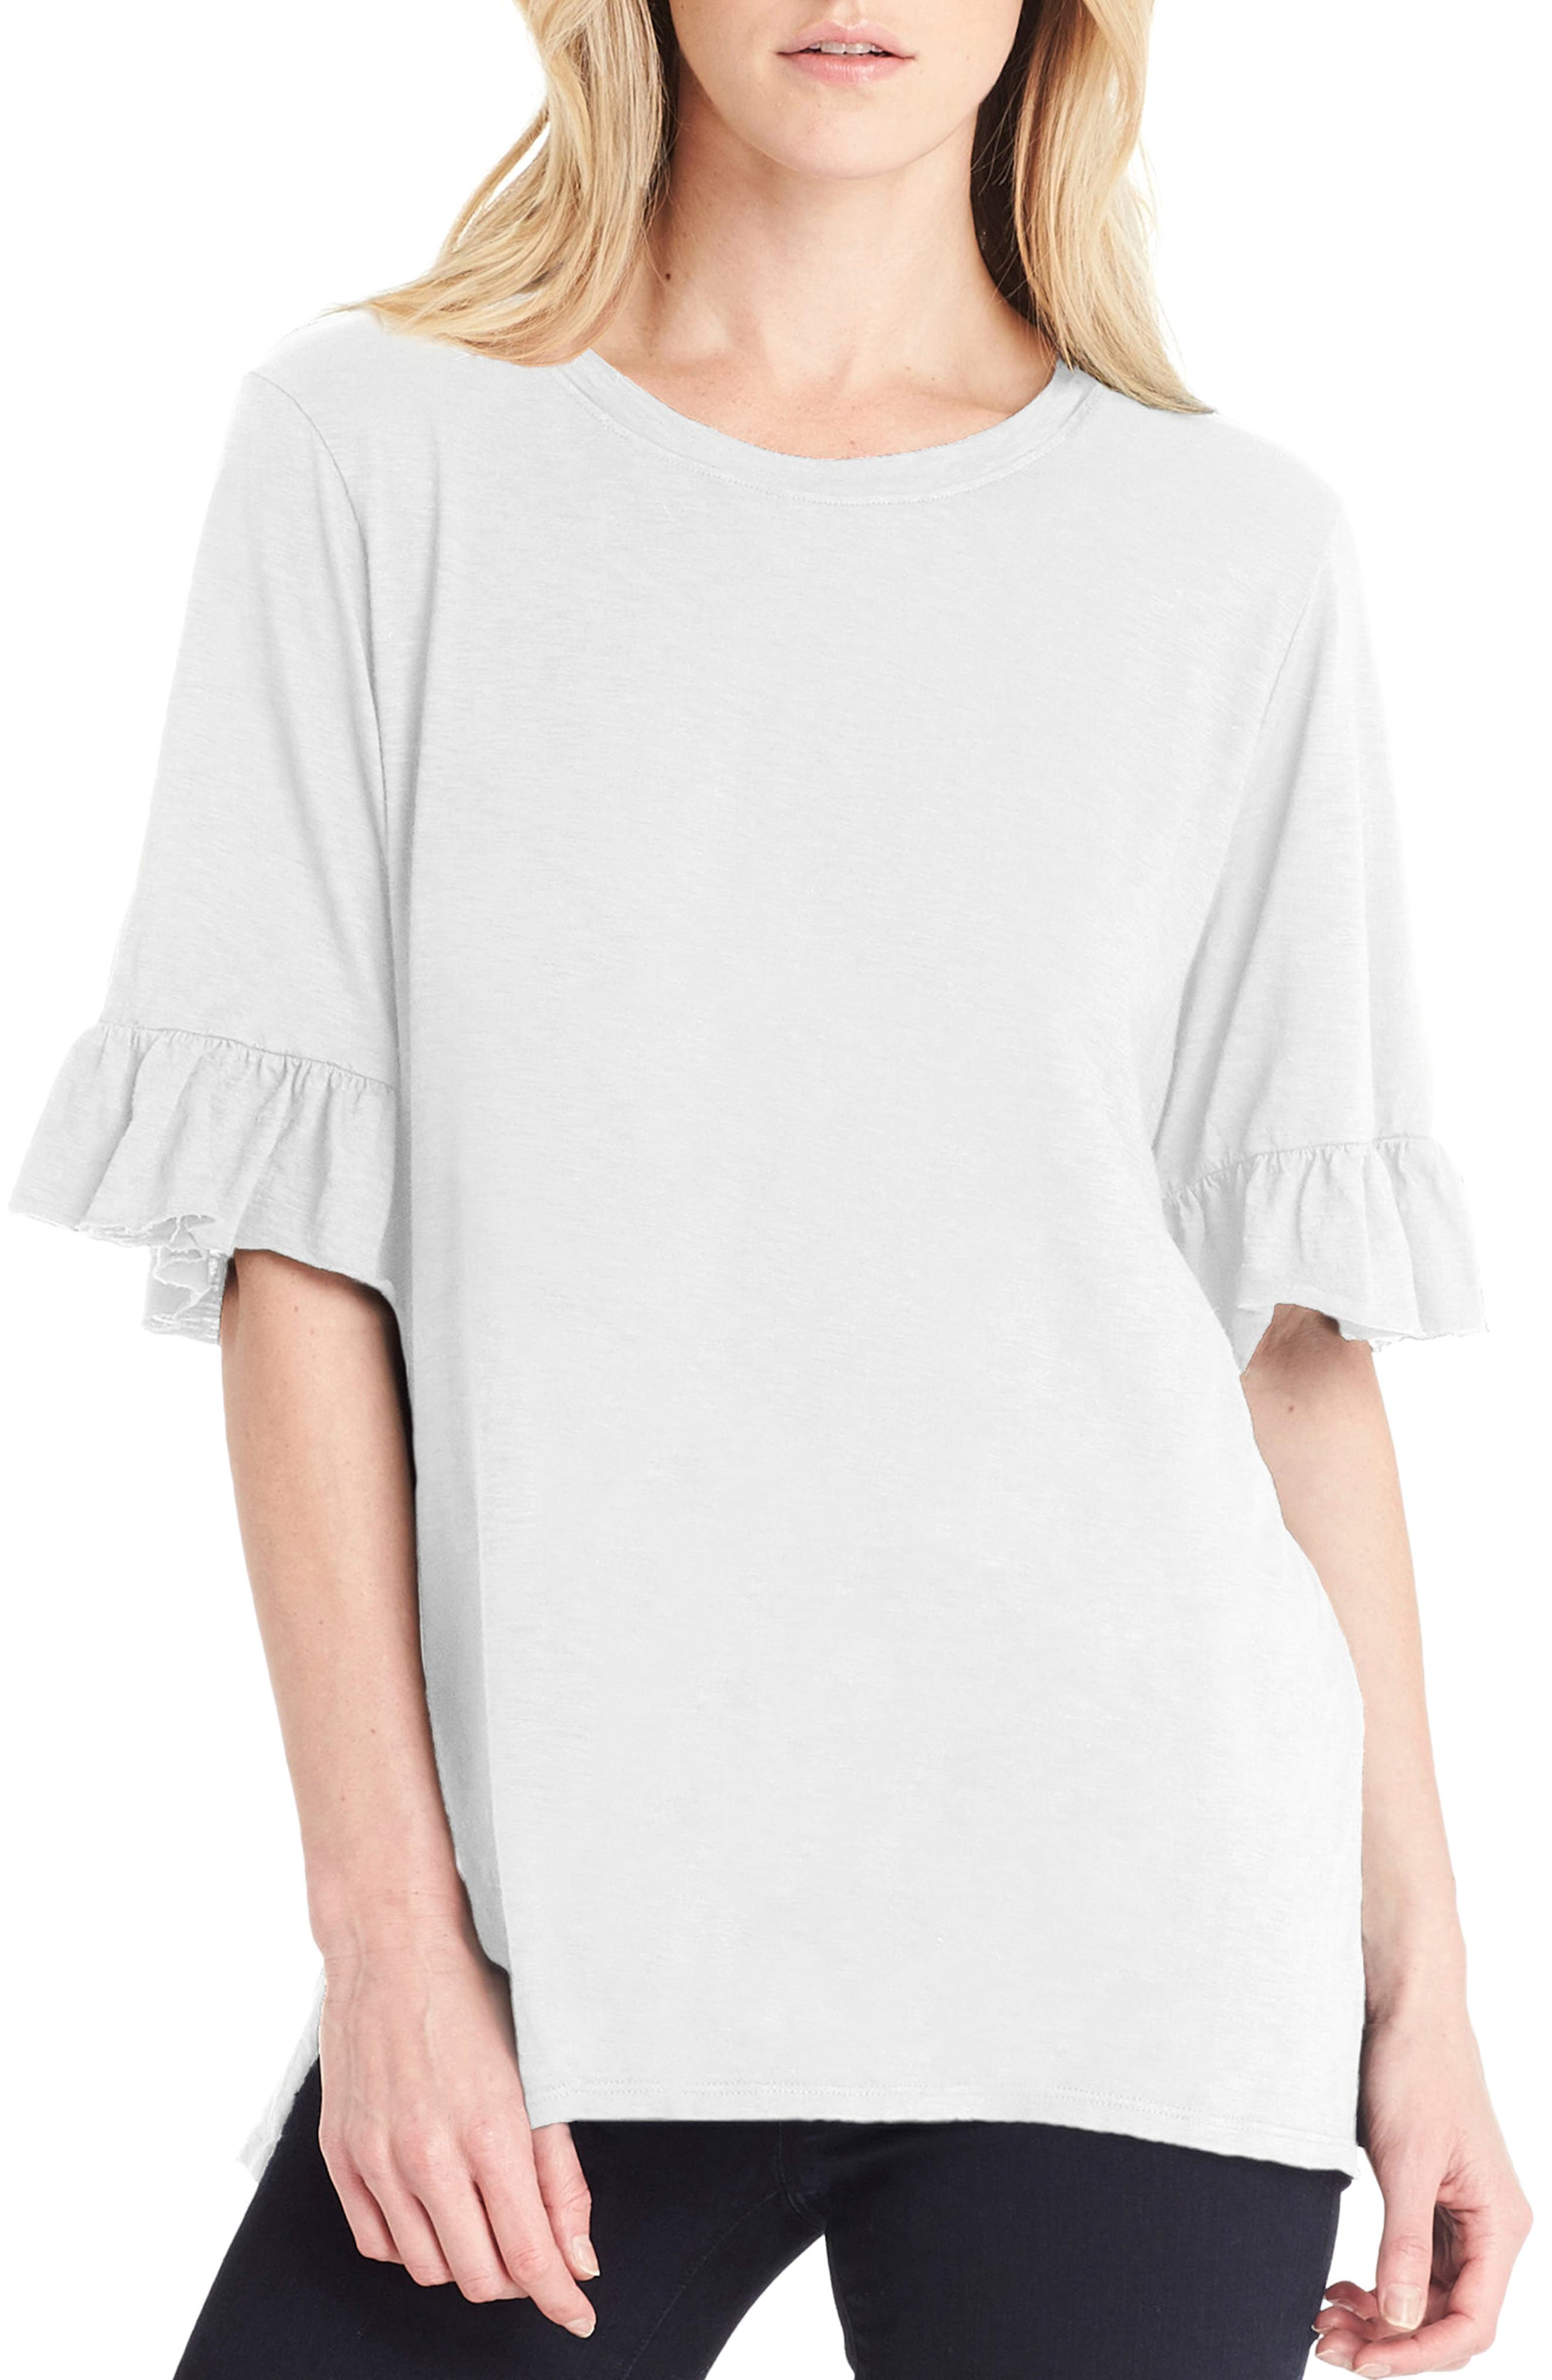 Ruffle Sleeve Top,                         Main,                         color, White